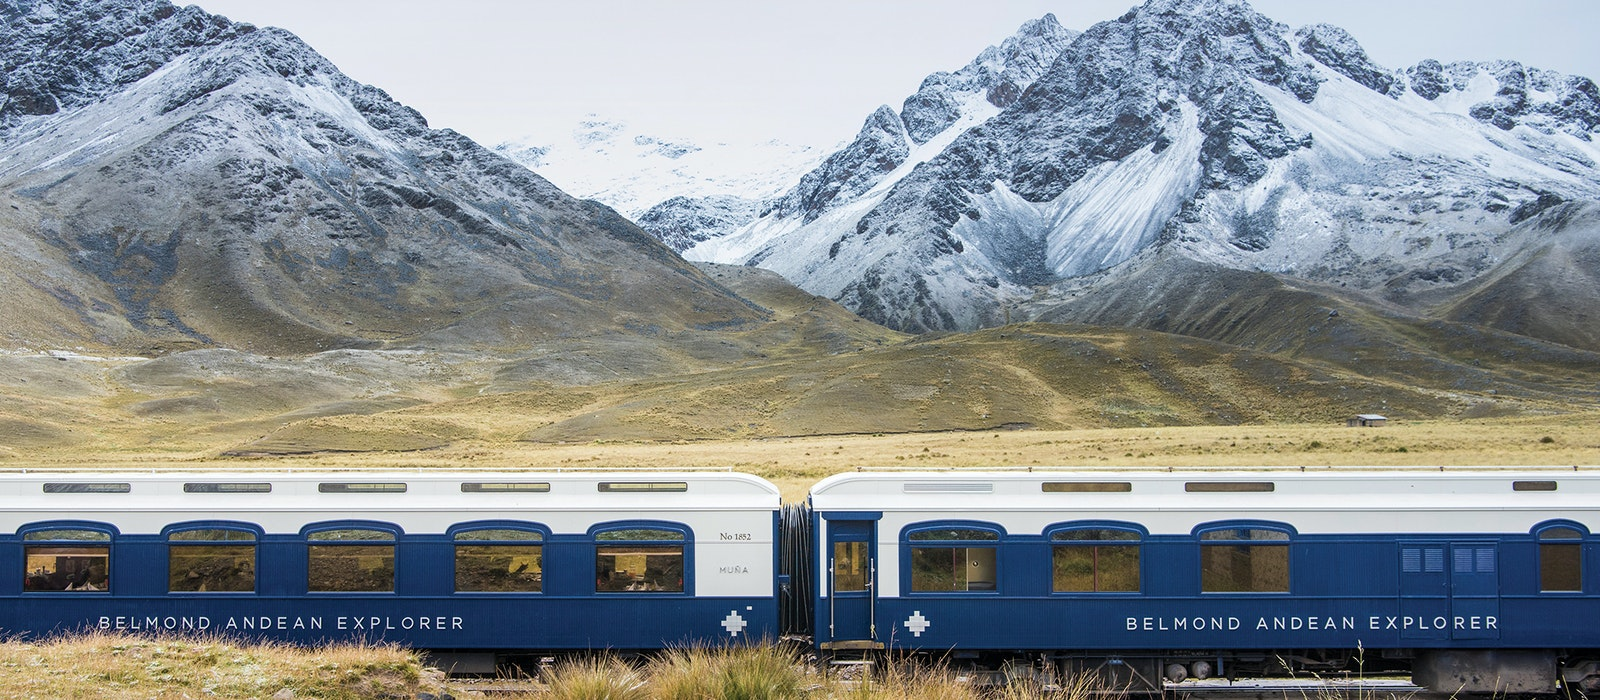 LVMH is acquiring all Belmond properties, including its luxury sleeper train in Peru, in 2019.